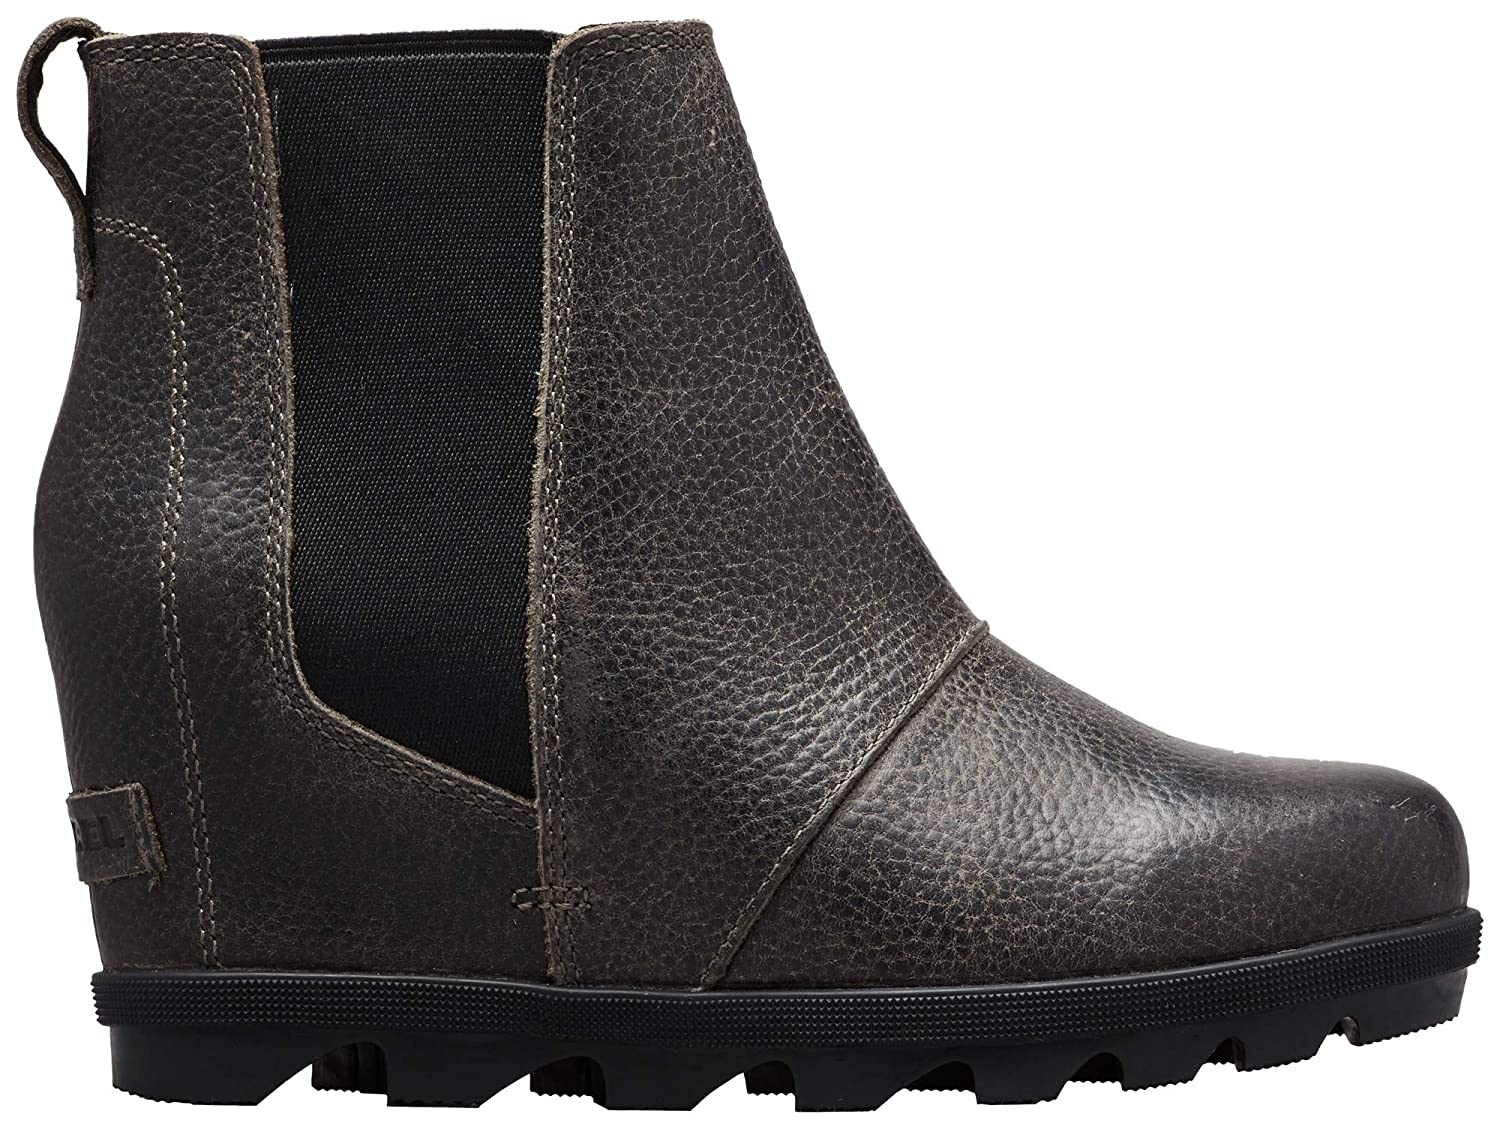 exquisite style superior quality undefeated x Amazon.com   Sorel - Women's Joan of Arctic Wedge II Chelsea Boots ...